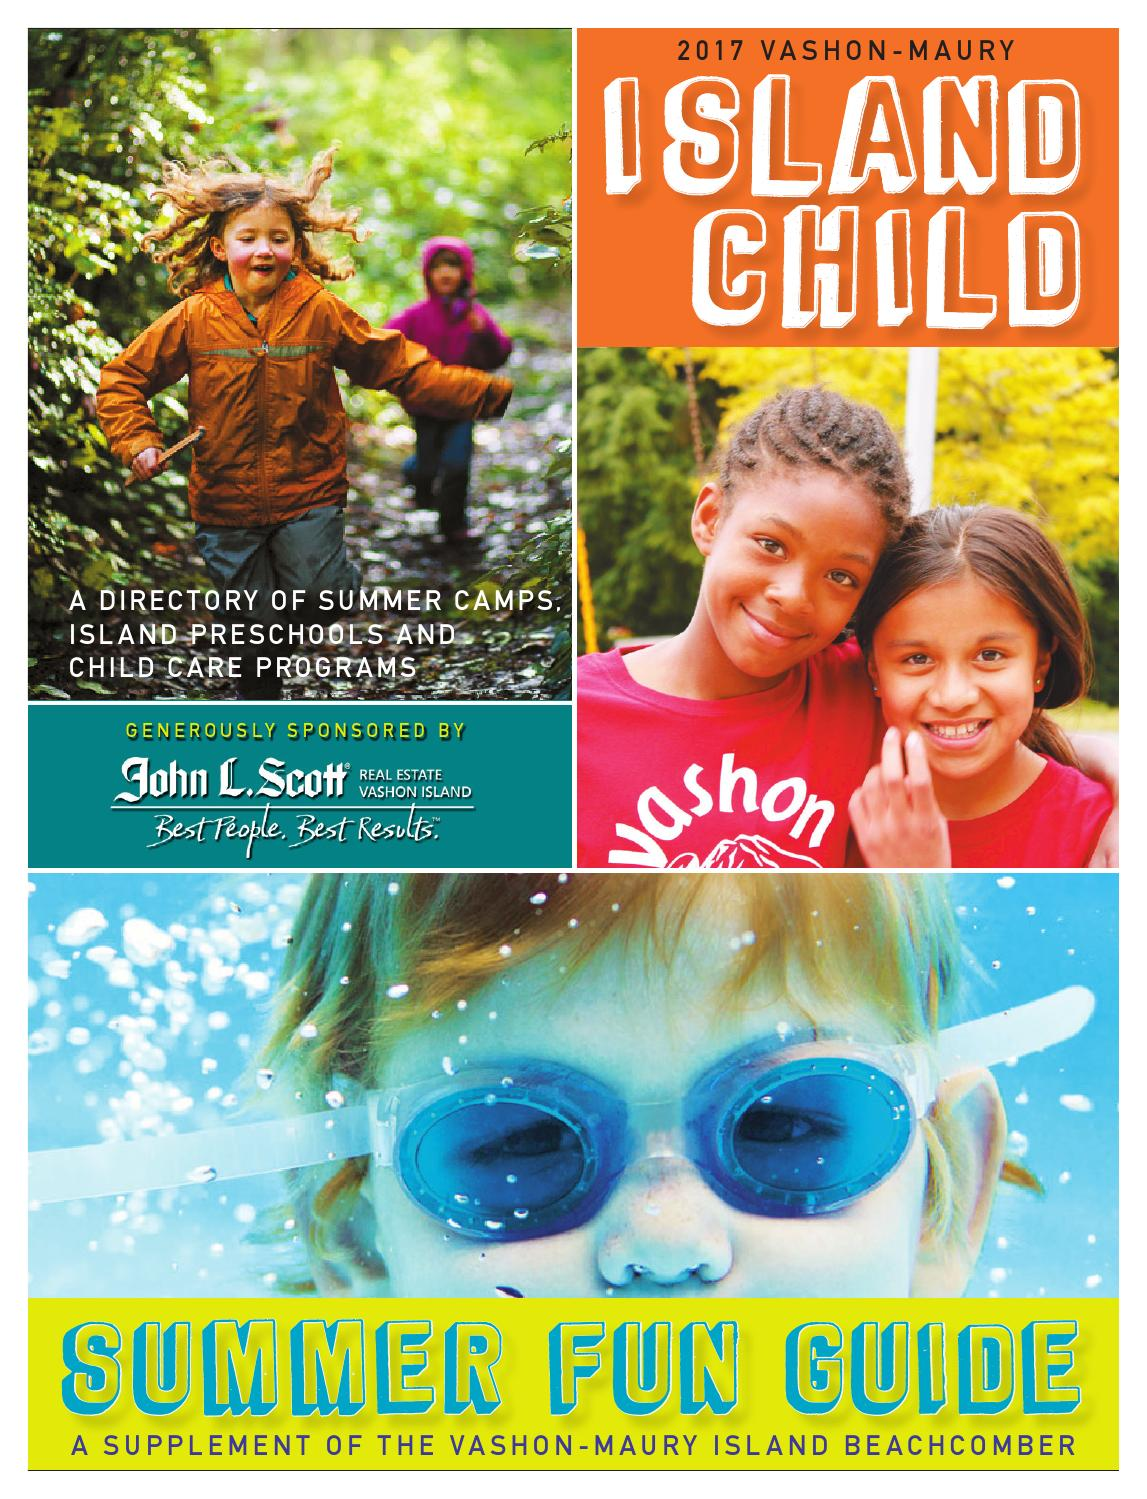 Summer fun vashon island child summer 2017 by sound publishing issuu nvjuhfo Choice Image